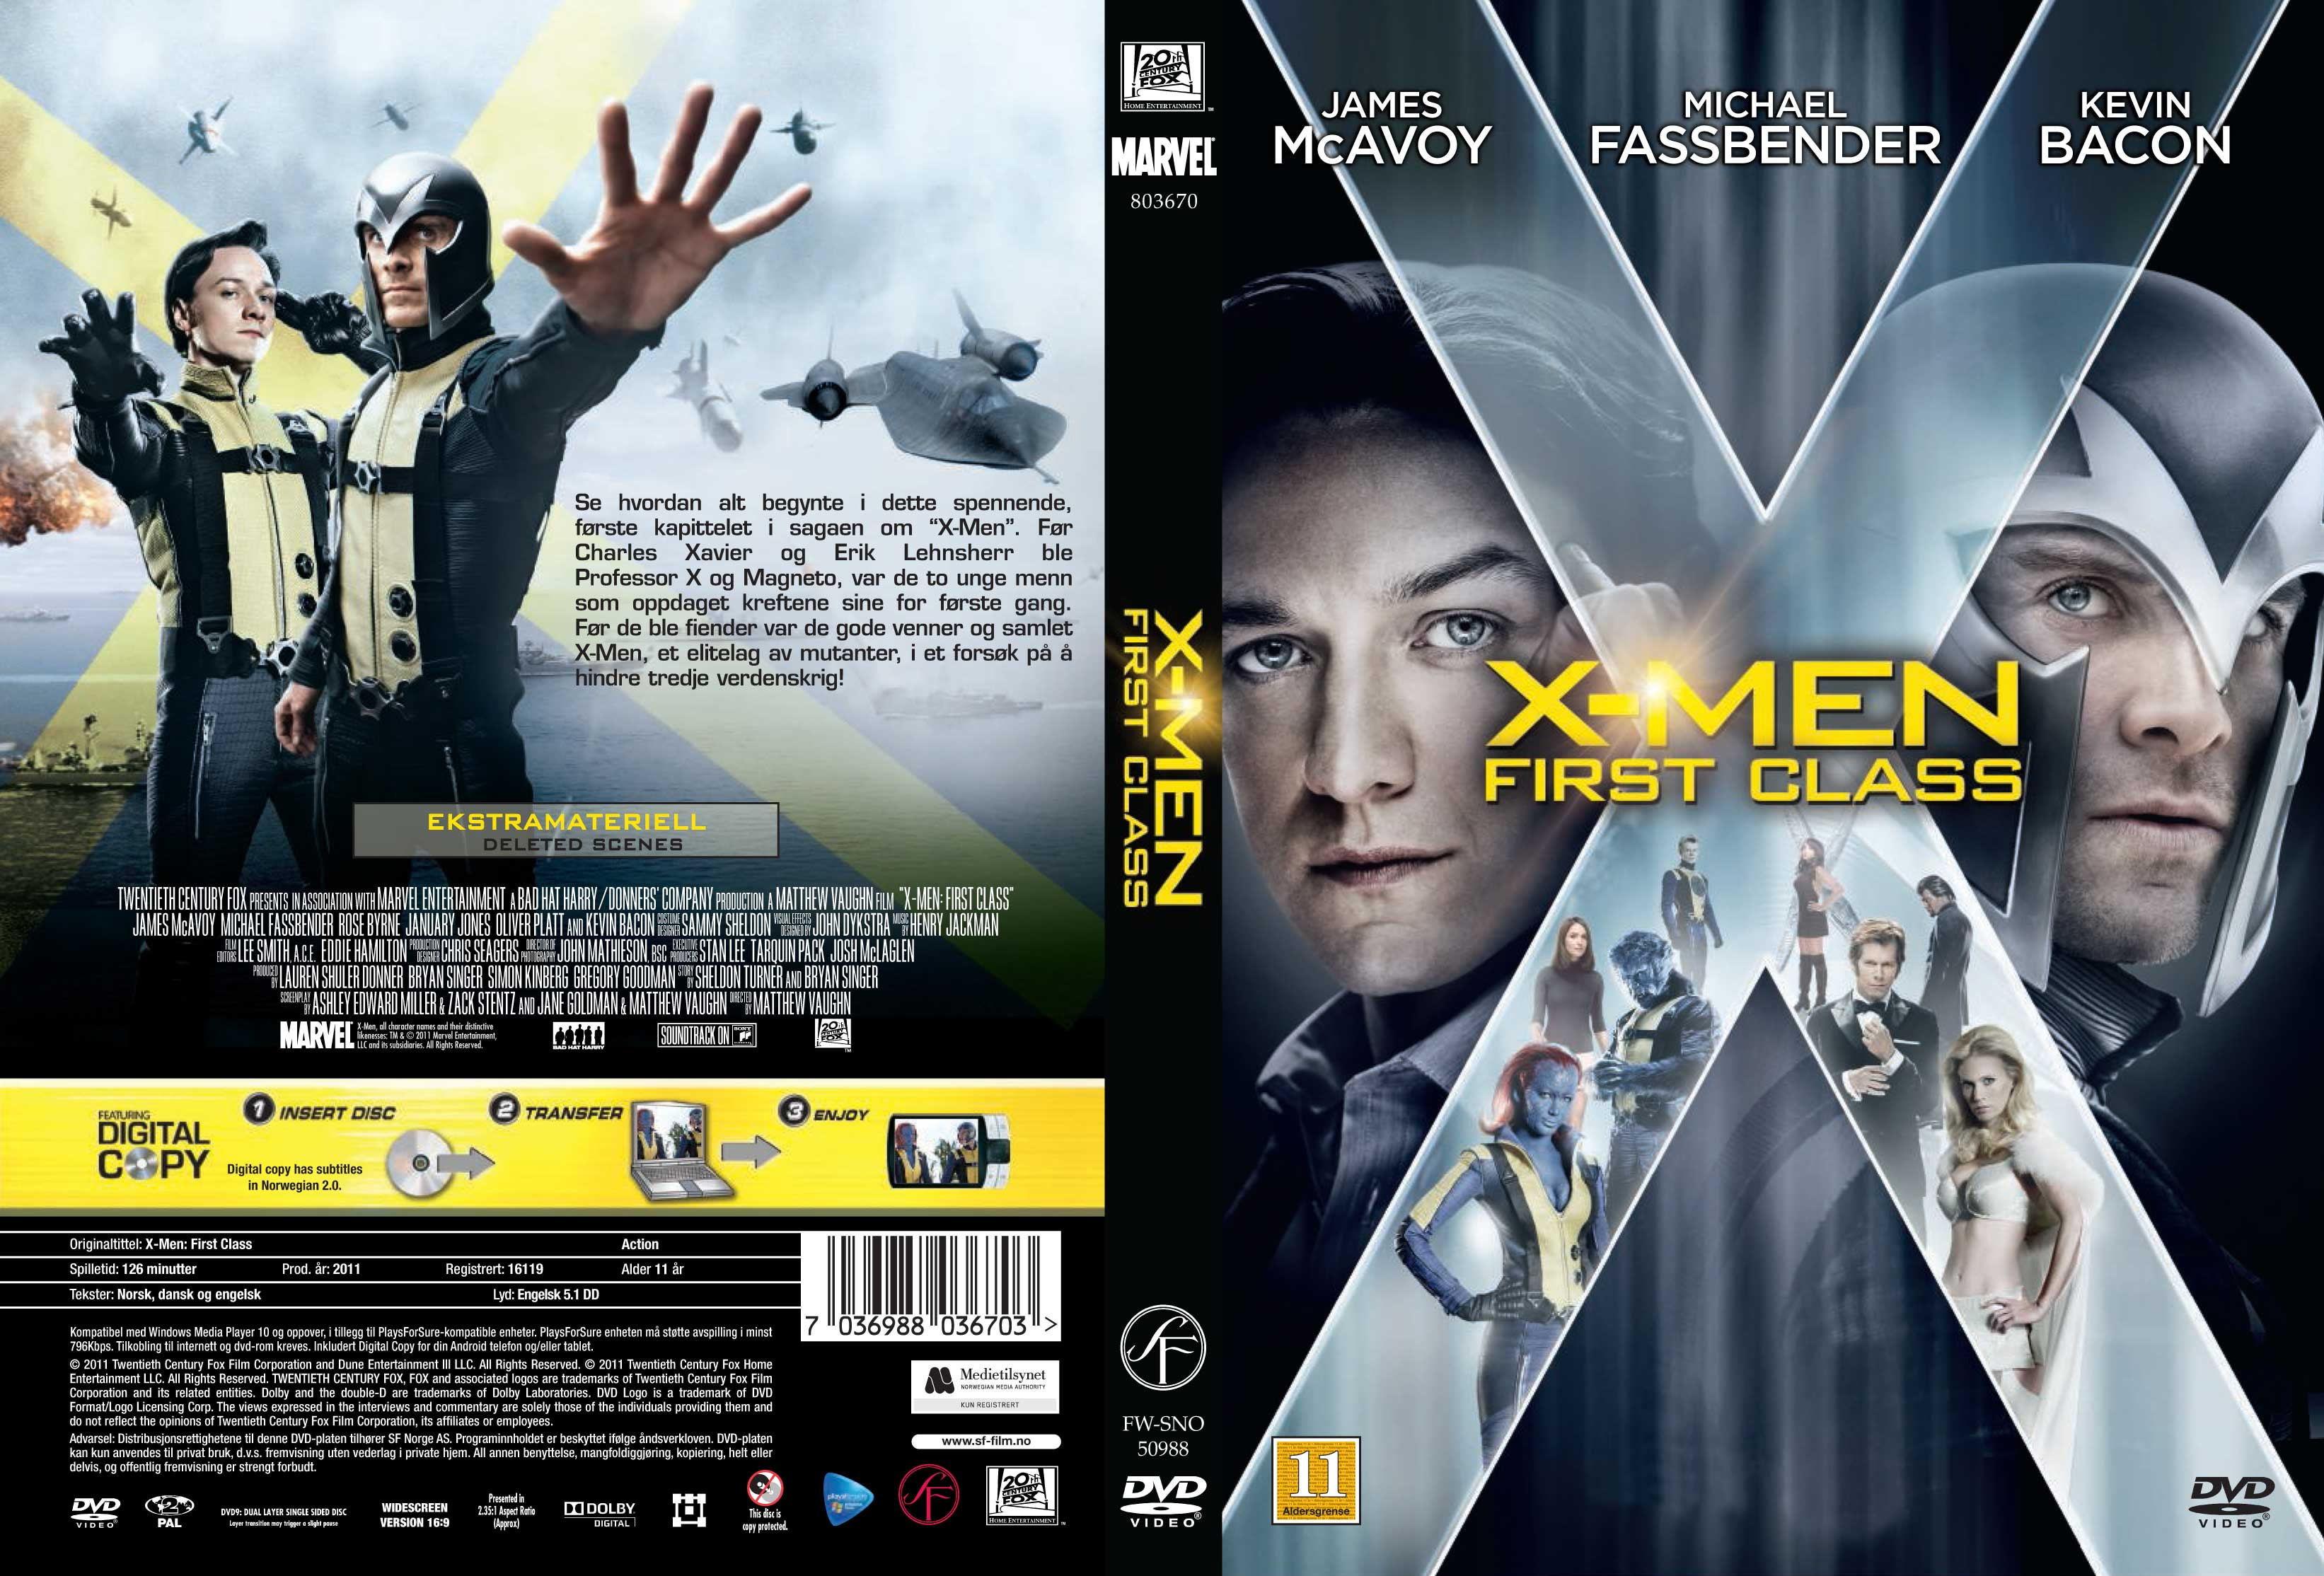 Hd wallpaper spiderman - X Men Dvd Cover 14773 Microsec